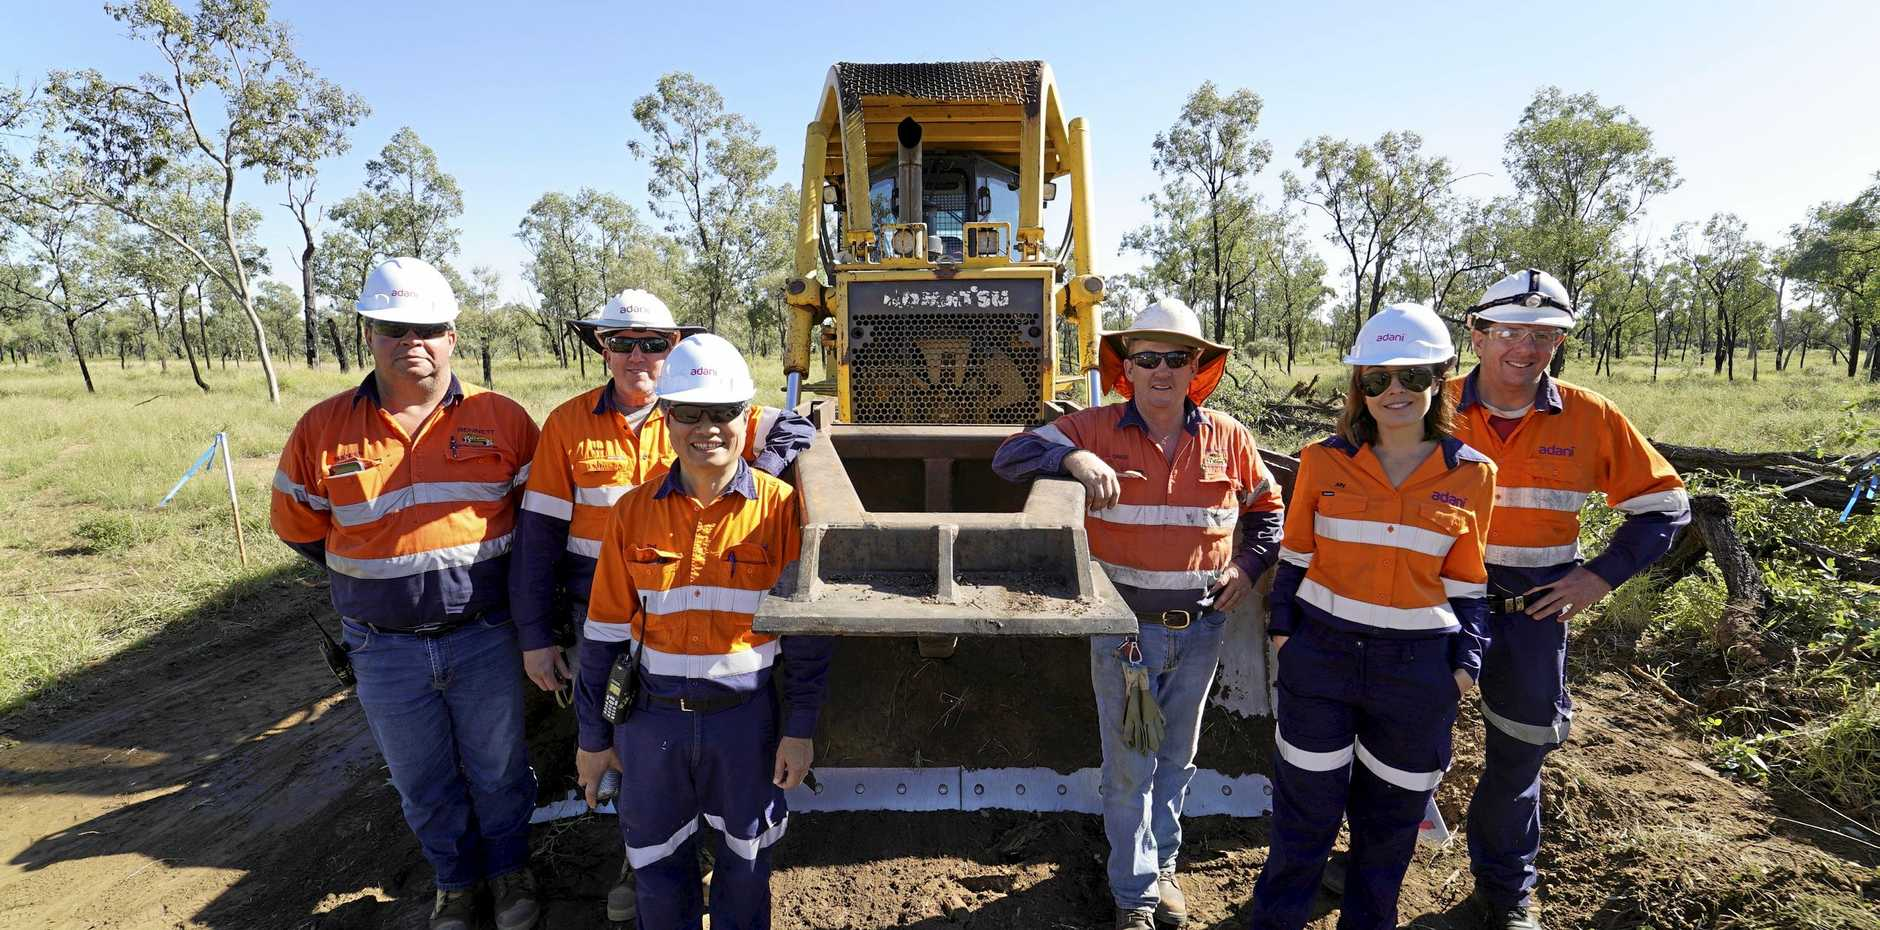 Brenden Dousling (Clermont), Allan Skillings (Adani), Ted Pham (Adani), Greg Bennett (Clermont), Ally Foley (Adani) and Mick Heap (Adani) commencing construction at the Carmichael Mine.